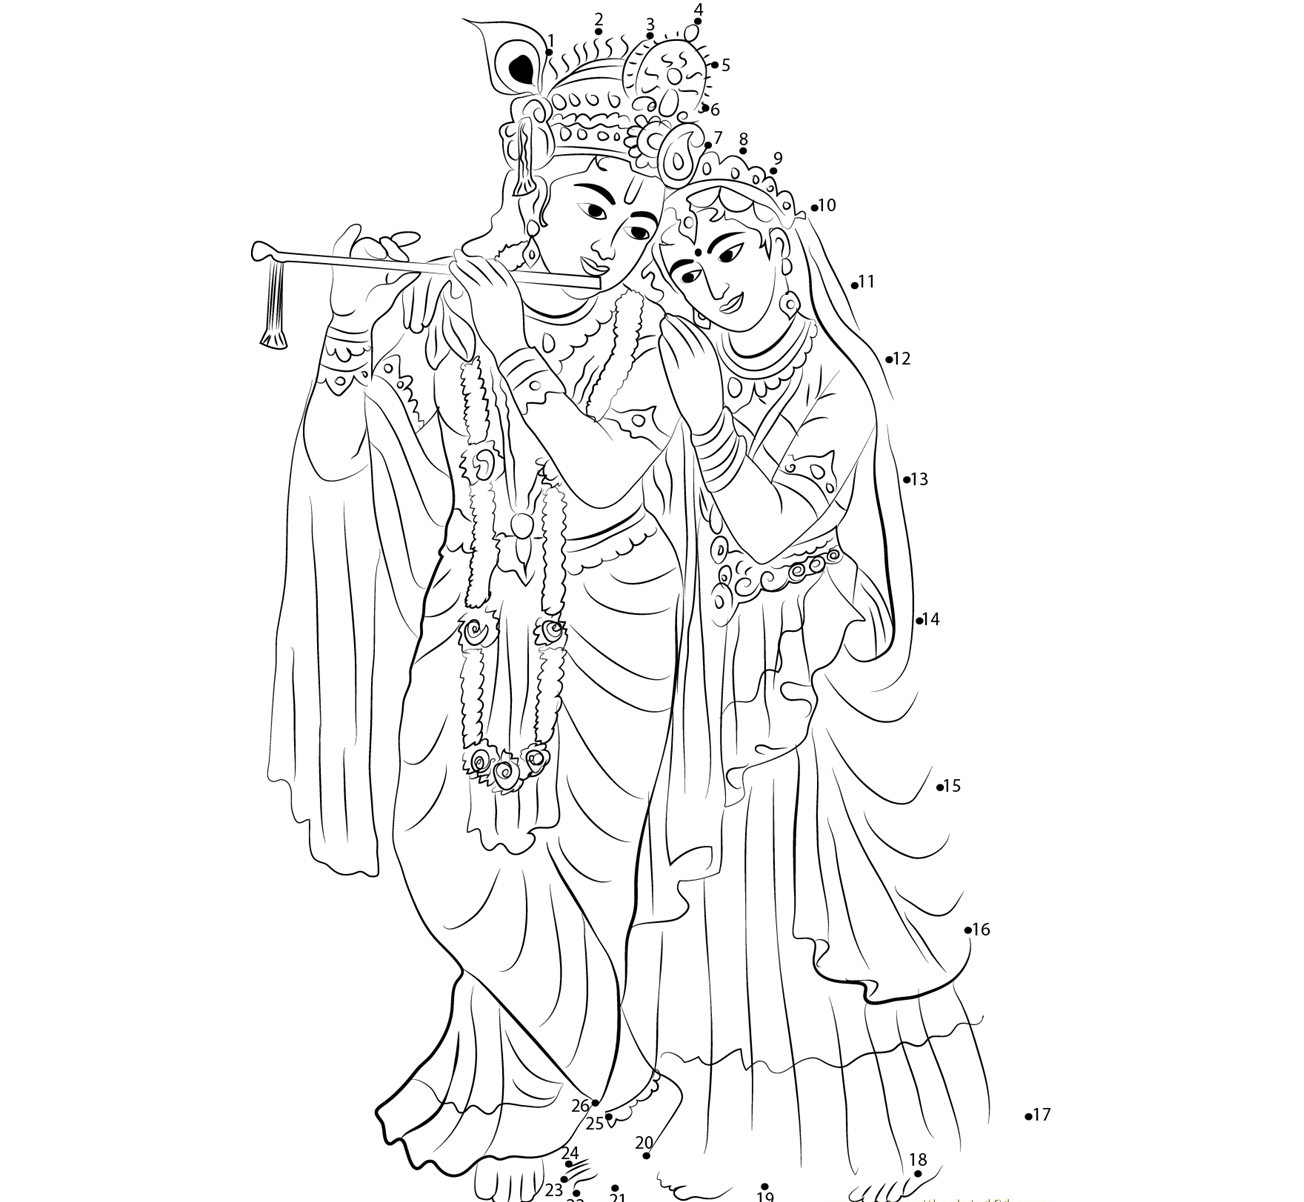 krishna pages for coloring - photo#34